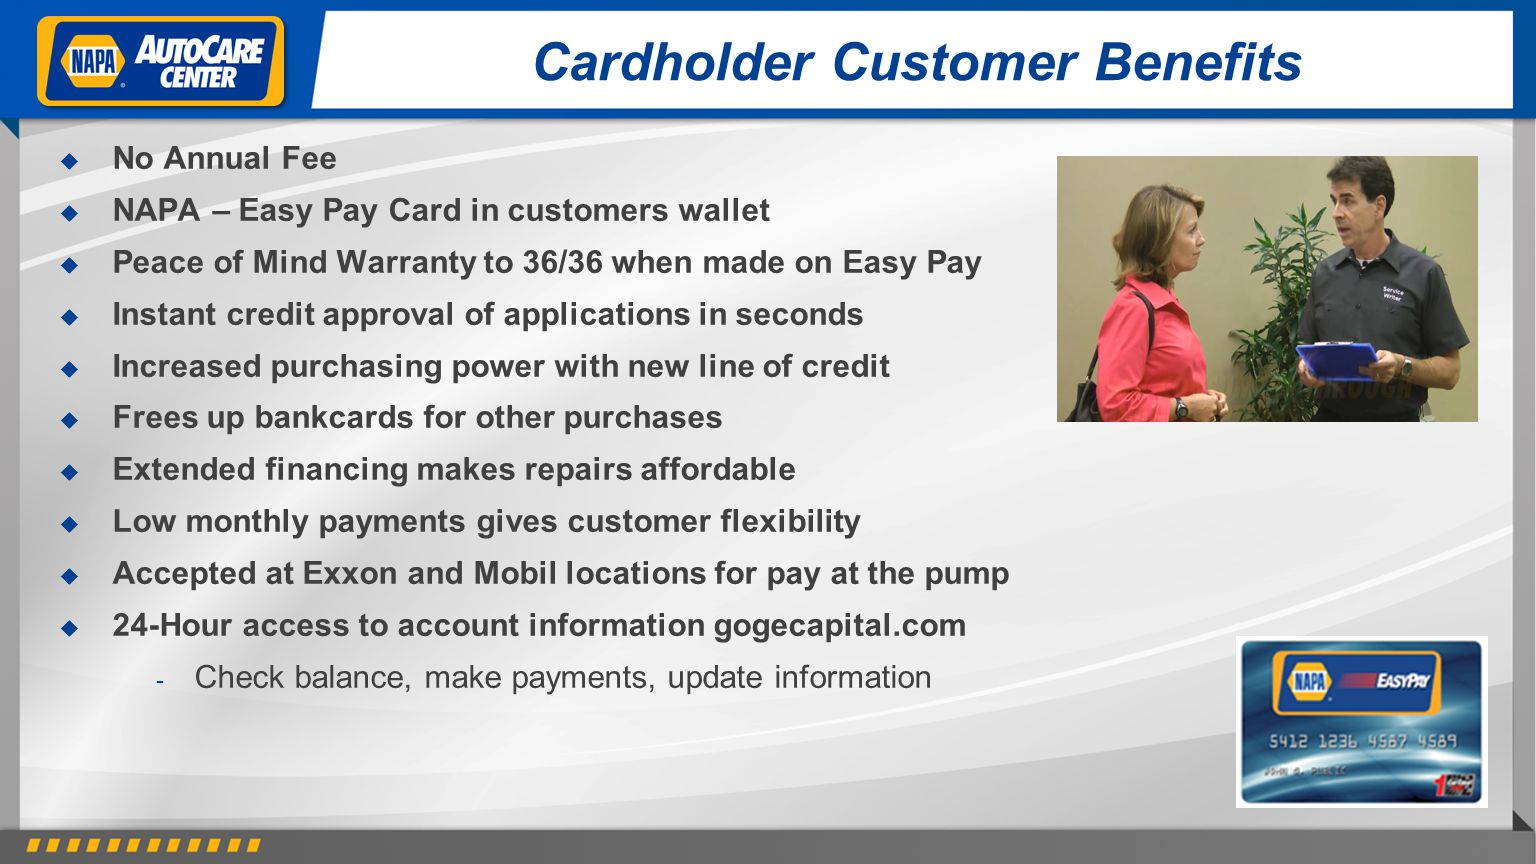 Cardholder Customer Benefits No Annual Fee NAPA – Easy Pay Card in customers wallet Peace of Mind Warranty to 36/36 when made on Easy Pay Instant credit approval of applications in seconds Increased purchasing power with new line of credit Frees up bankcards for other purchases Extended financing makes repairs affordable Low monthly payments gives customer flexibility Accepted at Exxon and Mobil locations for pay at the pump 24-Hour access to account information gogecapital.com - Check balance, make payments, update information